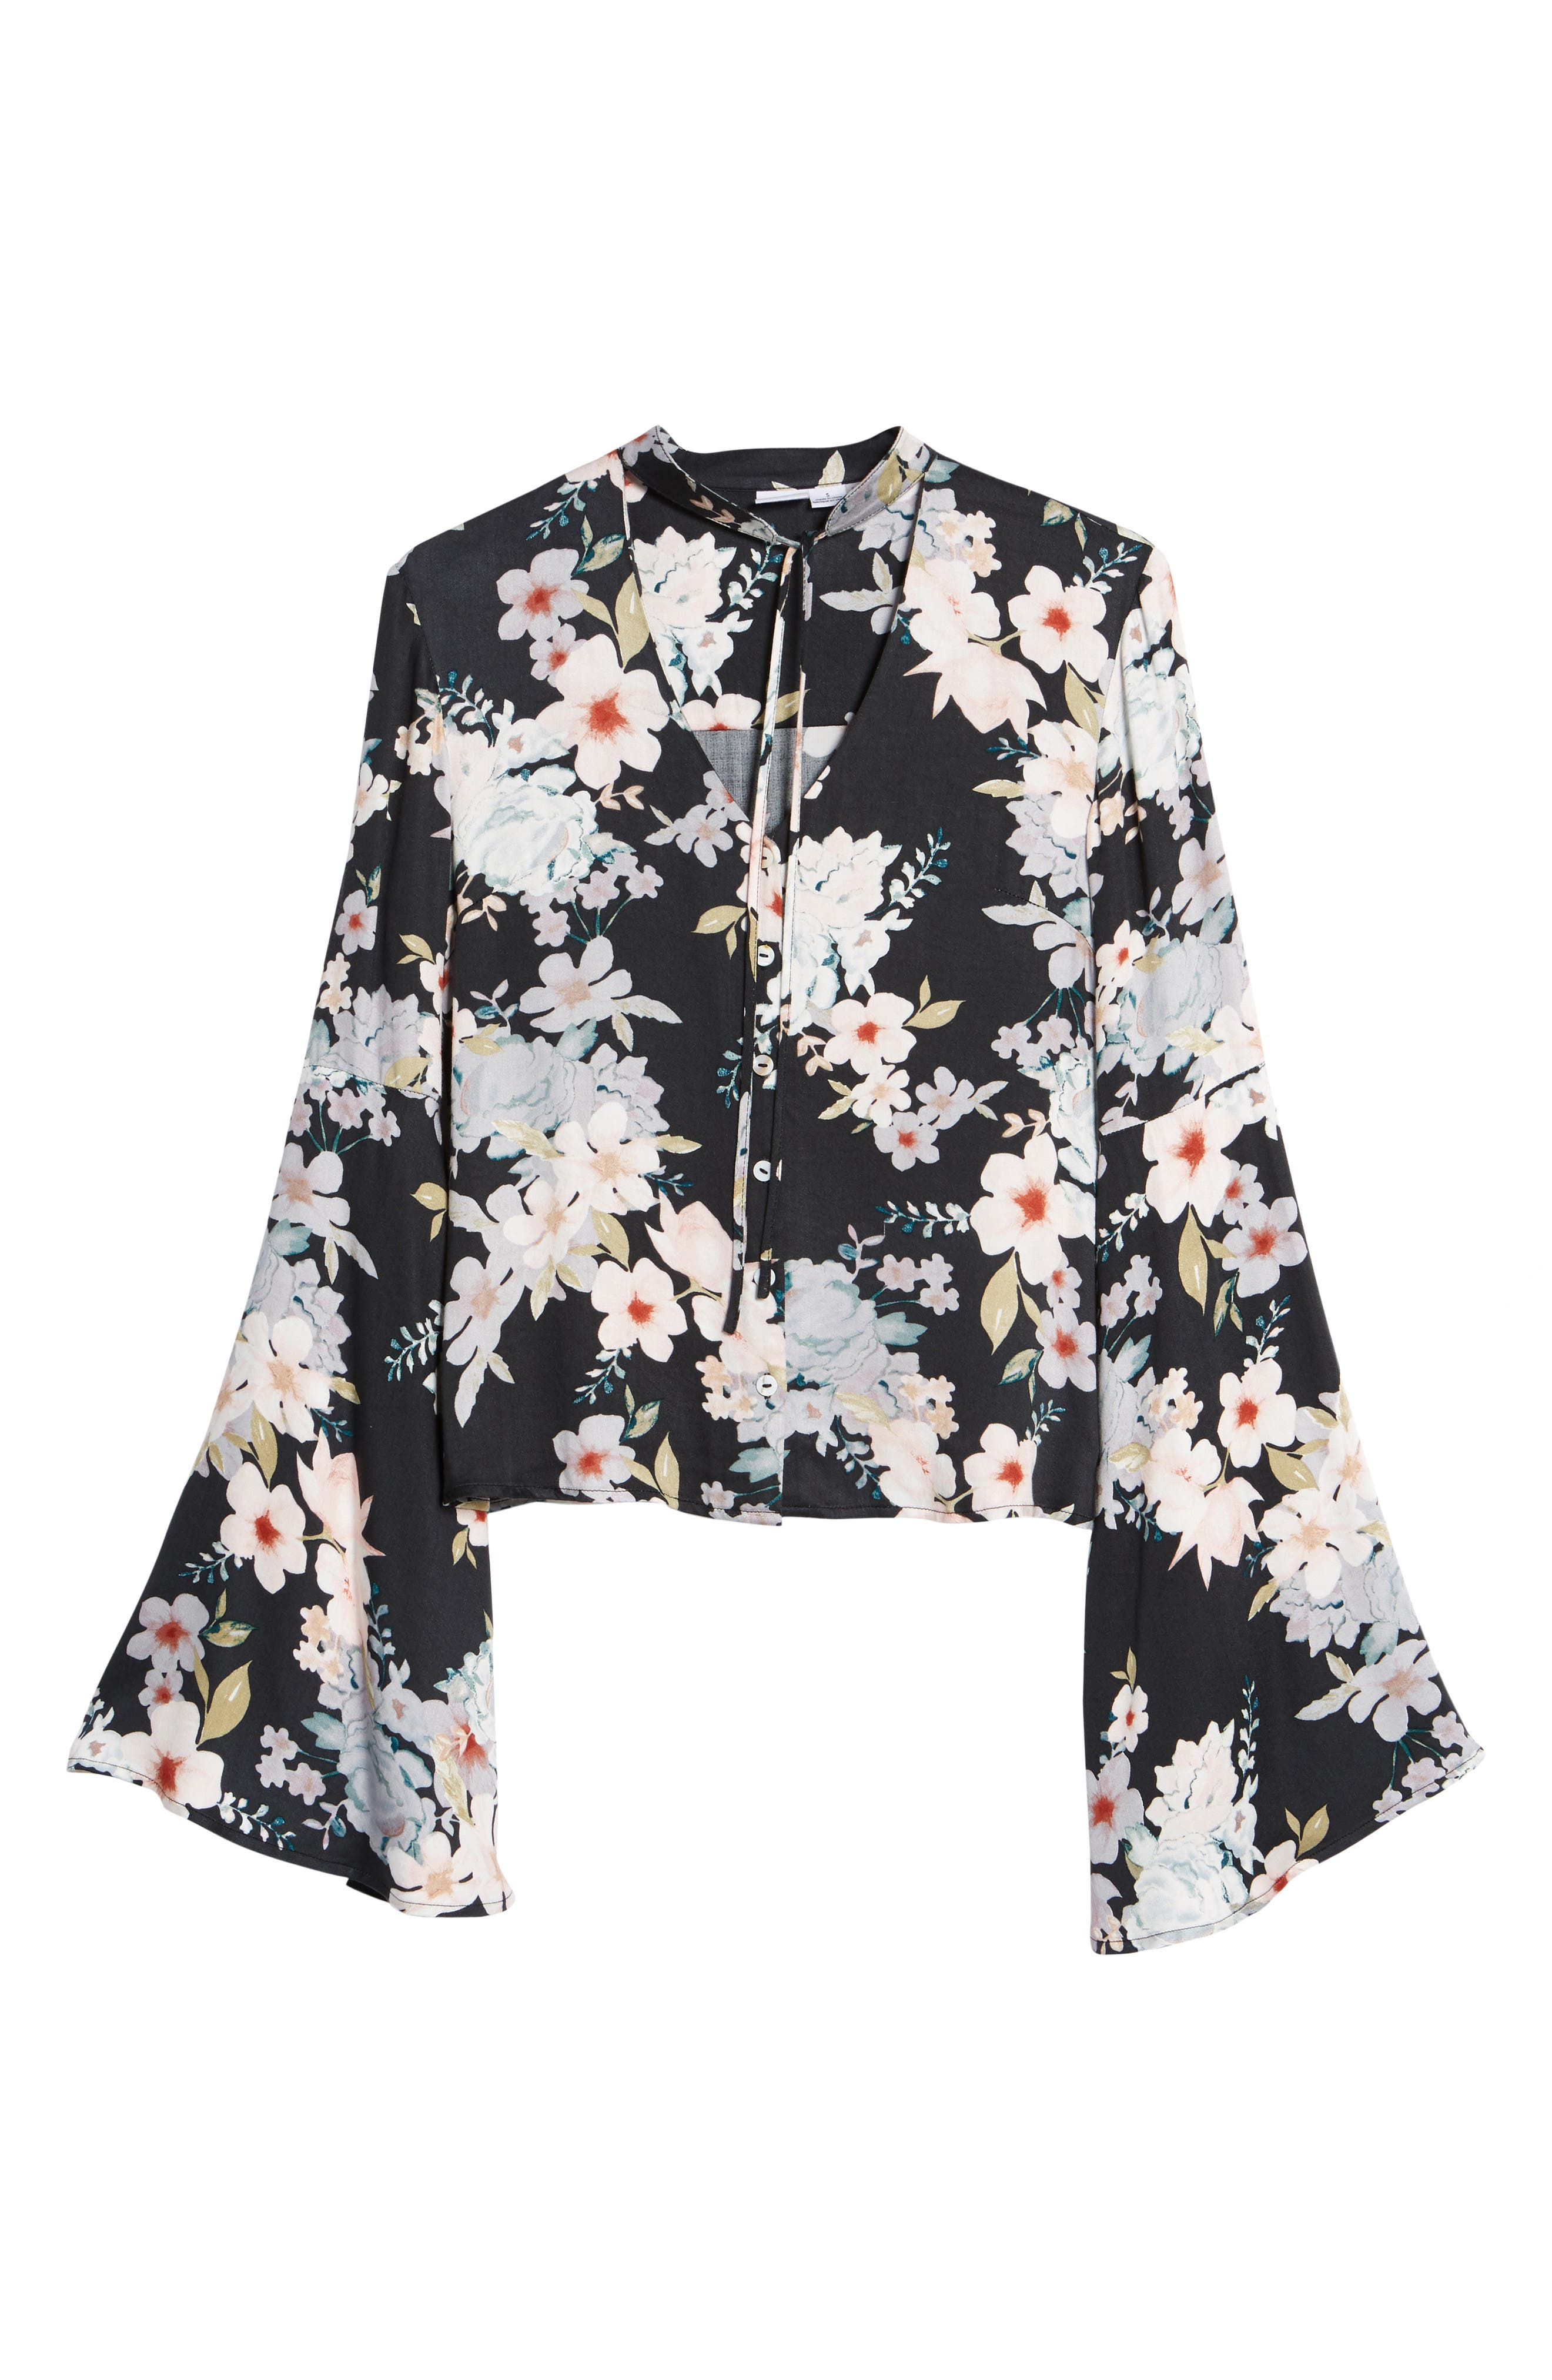 Mystic Nights Floral Blouse,                             Alternate thumbnail 6, color,                             400